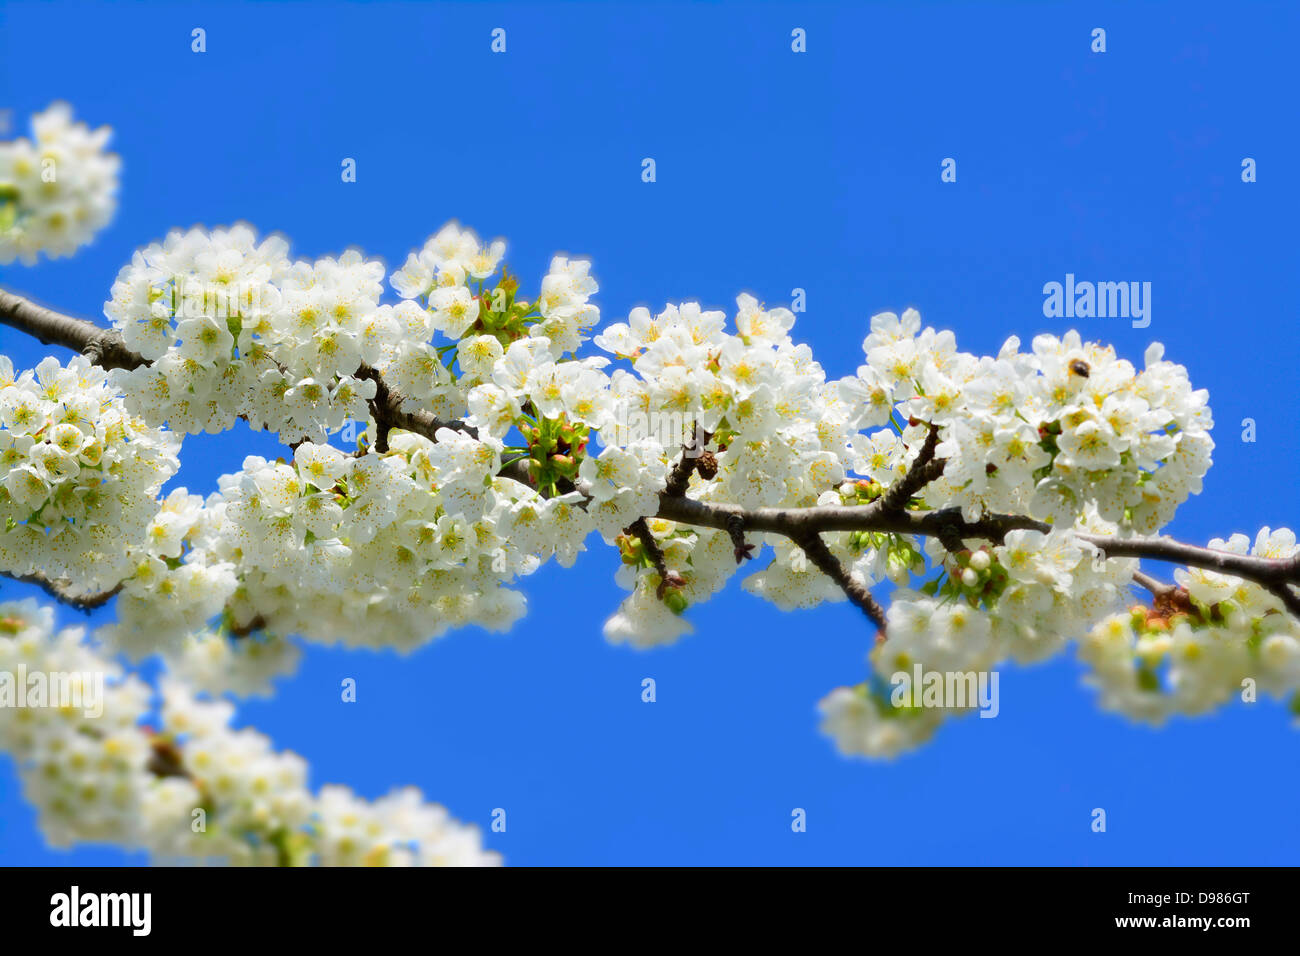 Apple blossom tree in Spring - Stock Image